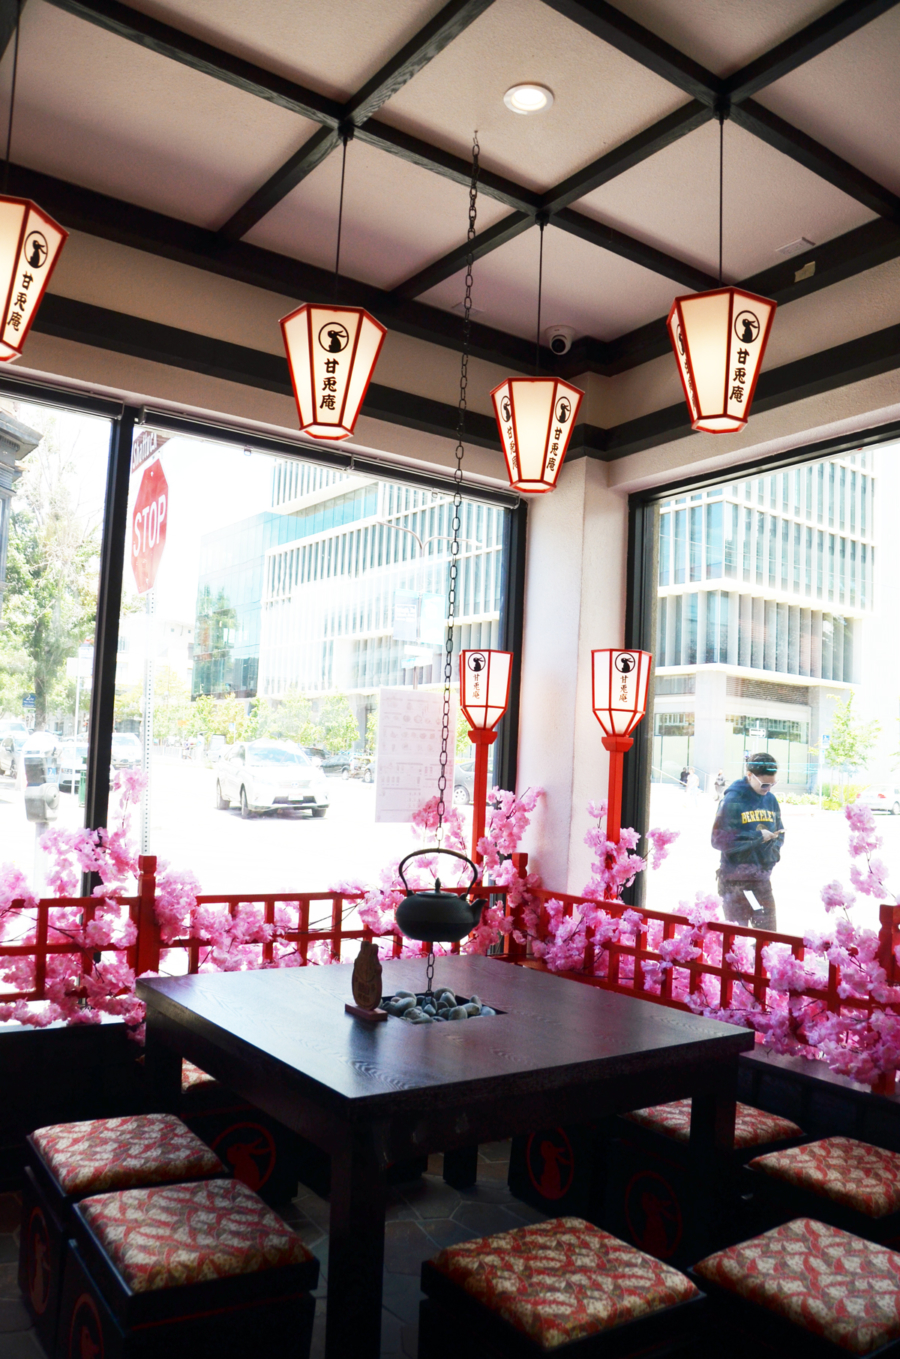 A corner table in the front dining area at Amausaan Uji Matcha in Berkeley is surrounded by windows and decorated with fake cherry blossoms, lanterns and a hanging tea kettle over a table.